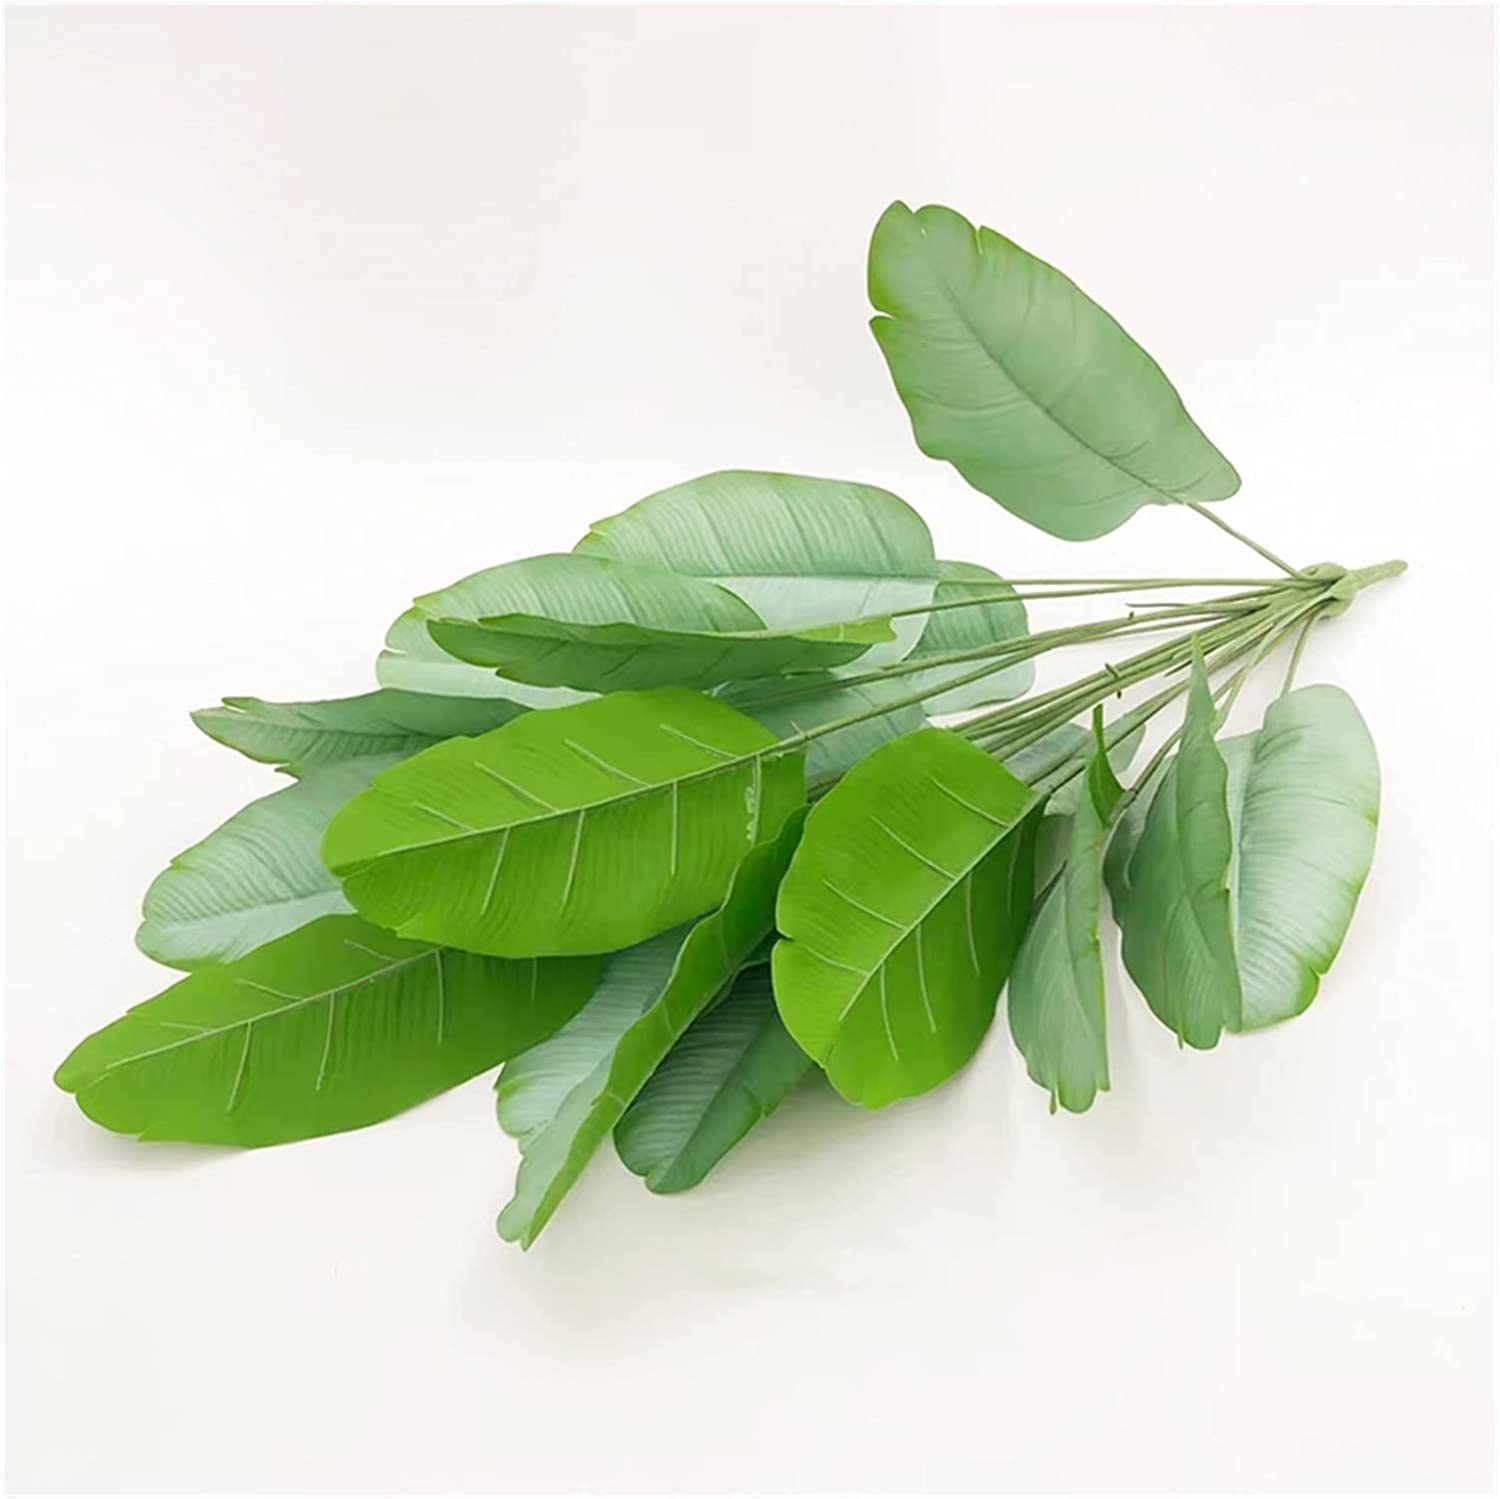 Mail order cheap Yzhmm Artificial Plants 80 cm Tropical Plant Max 45% OFF 18 Fork